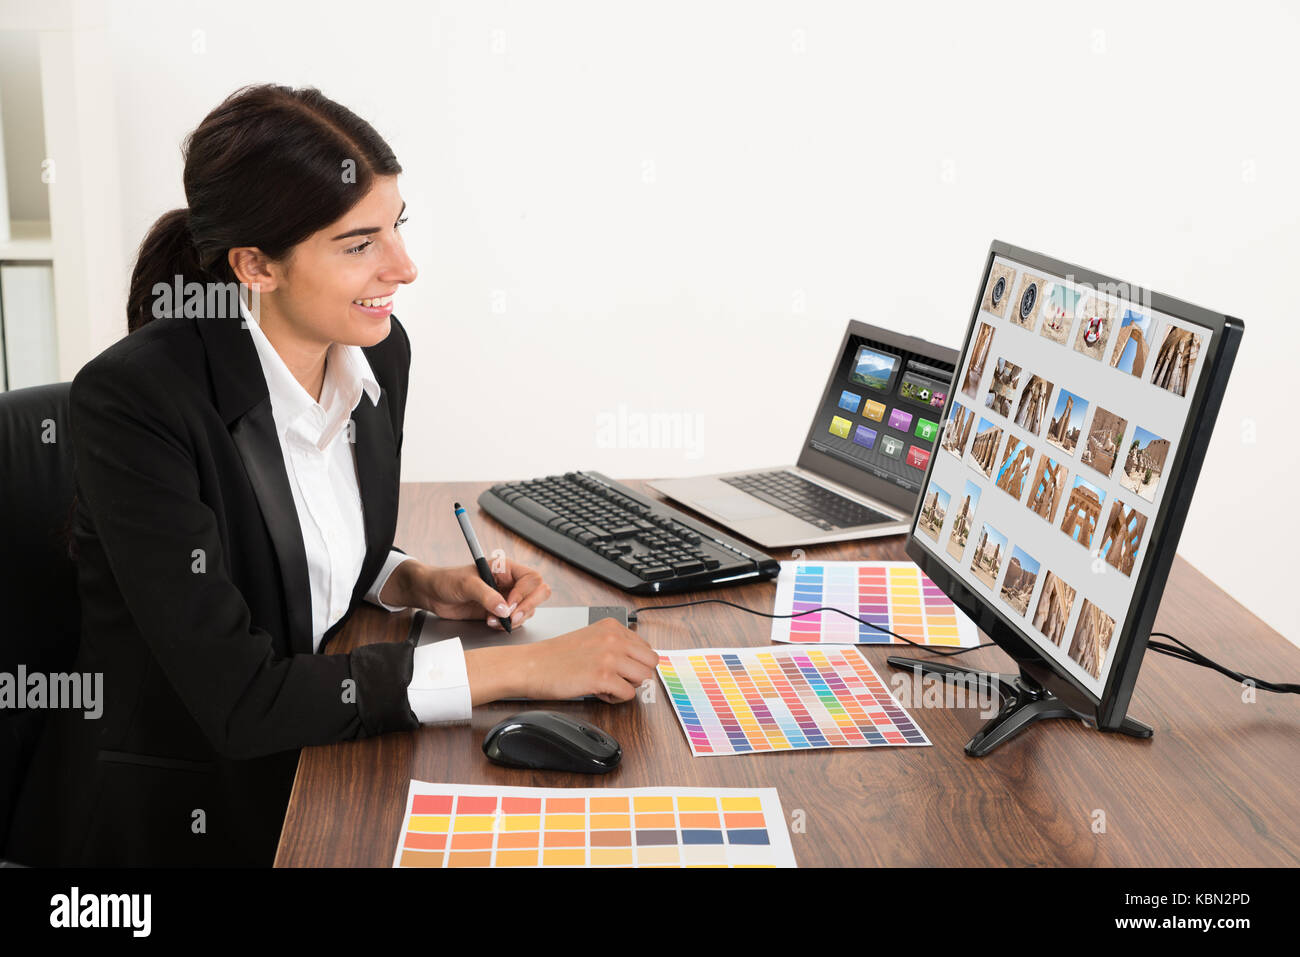 Young Happy Female Graphic Designer In Office. Photographer owns copyright for images on screen - Stock Image